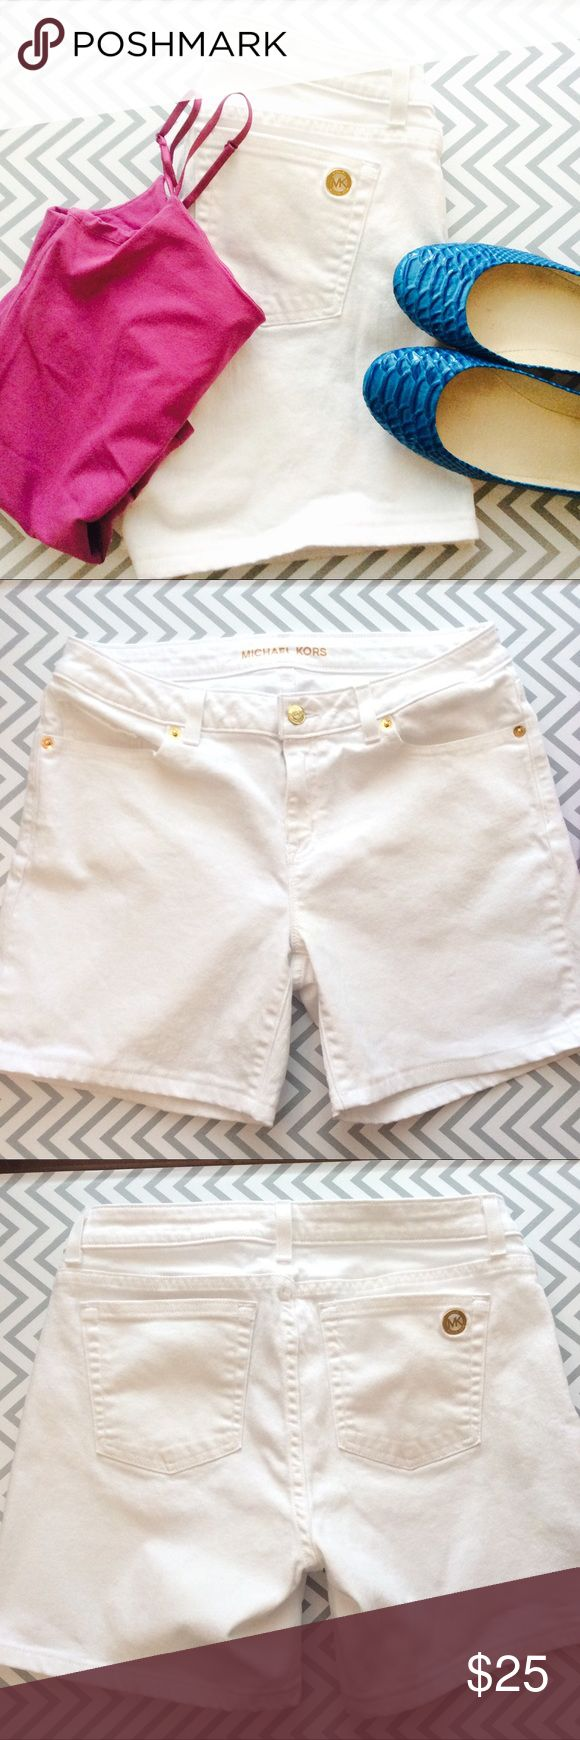 ⚜️Michael Kors White Bermuda Shorts These bright white denim Bermuda shorts are a great fit and have a higher waist. Worn only a couple of times. I looked really carefully and saw no stains. Practically new! Michael Kors Shorts Jean Shorts